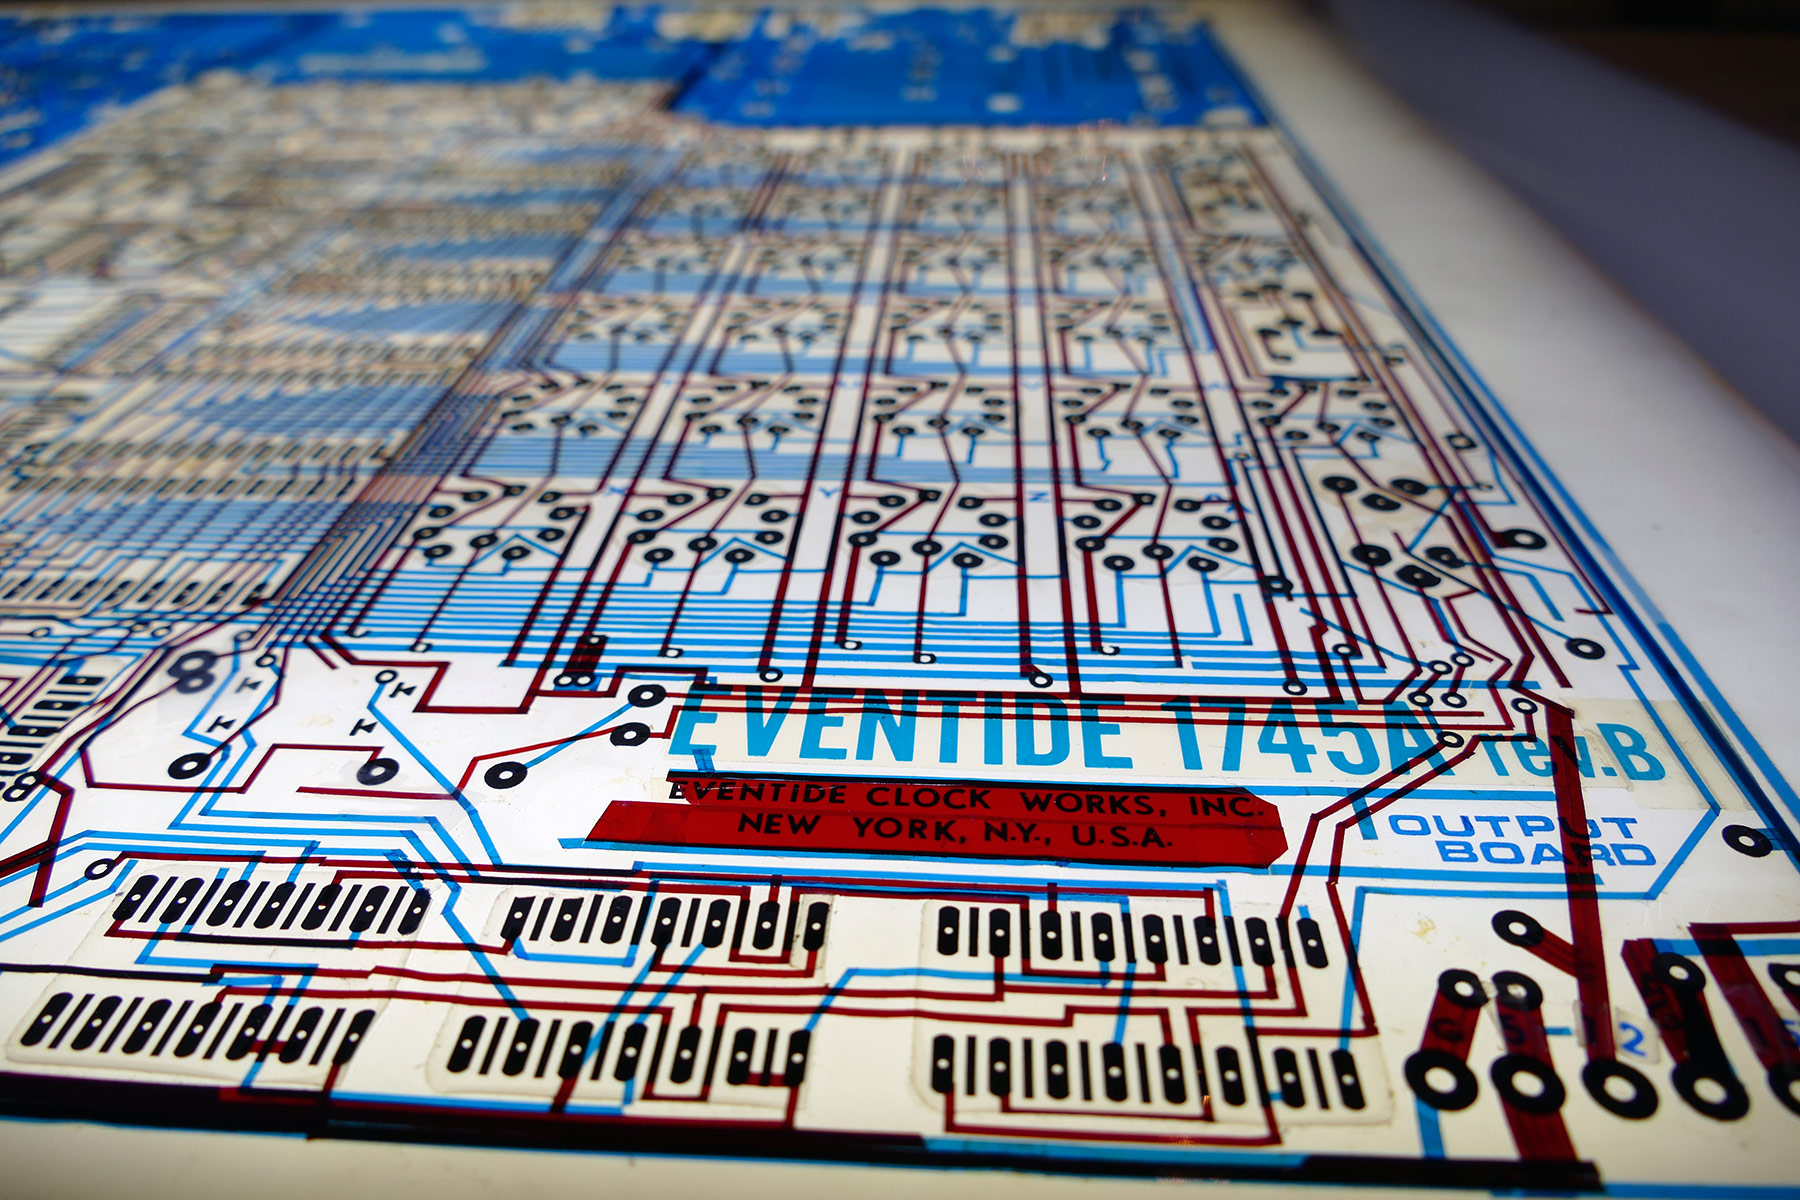 Original 1745A Circuit Board Artwork